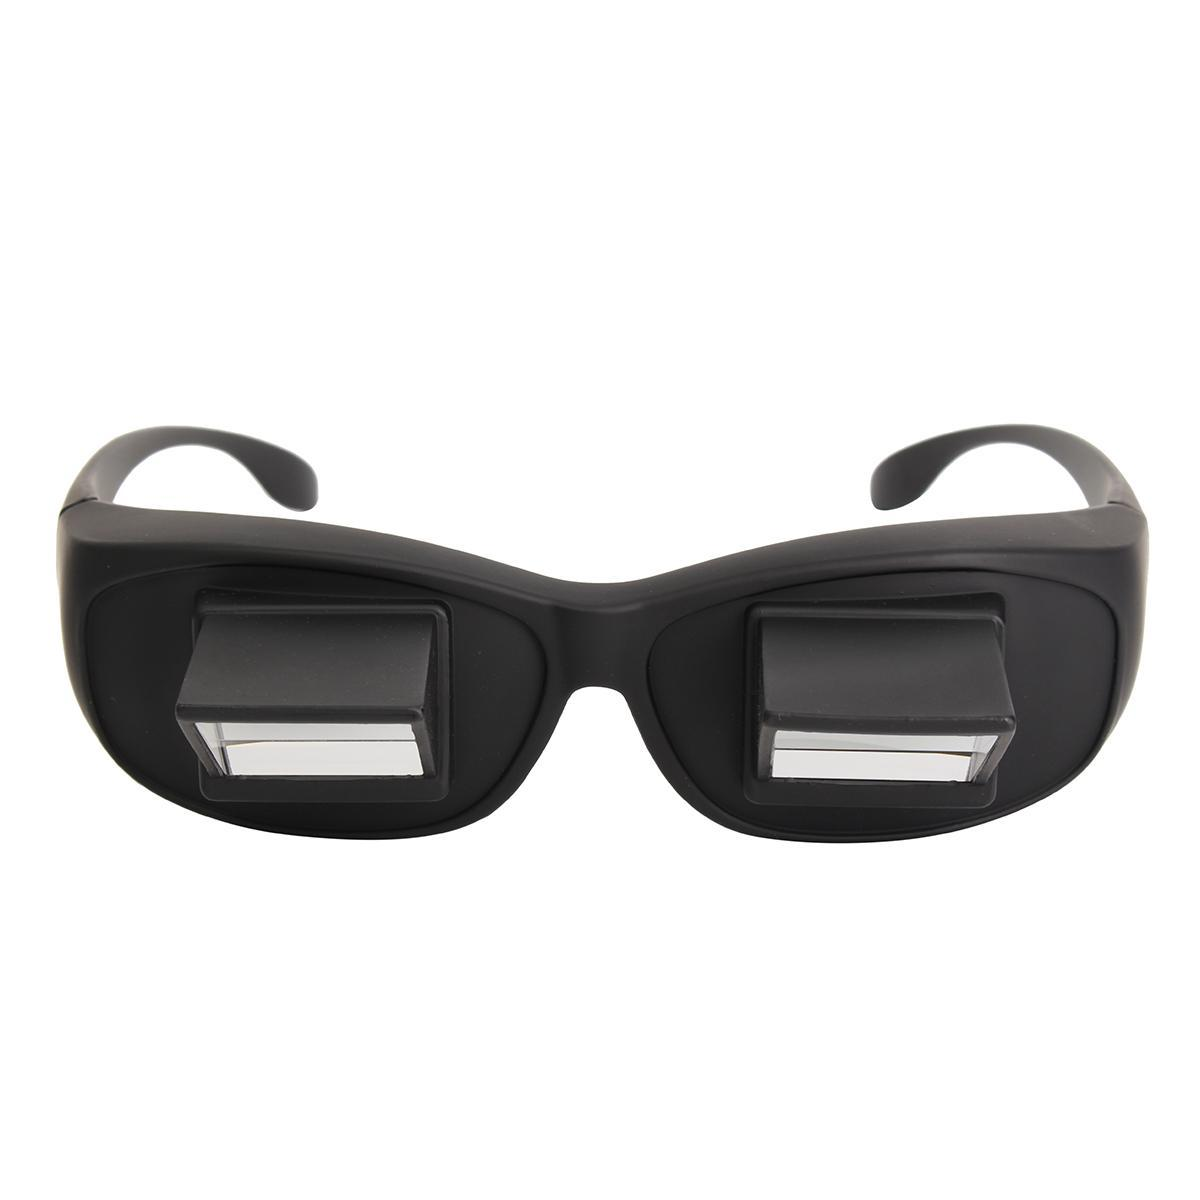 d923cae637 Periscope watching spectacles bed prism reading glasses lying down eyeglass  buy sell online best prices in